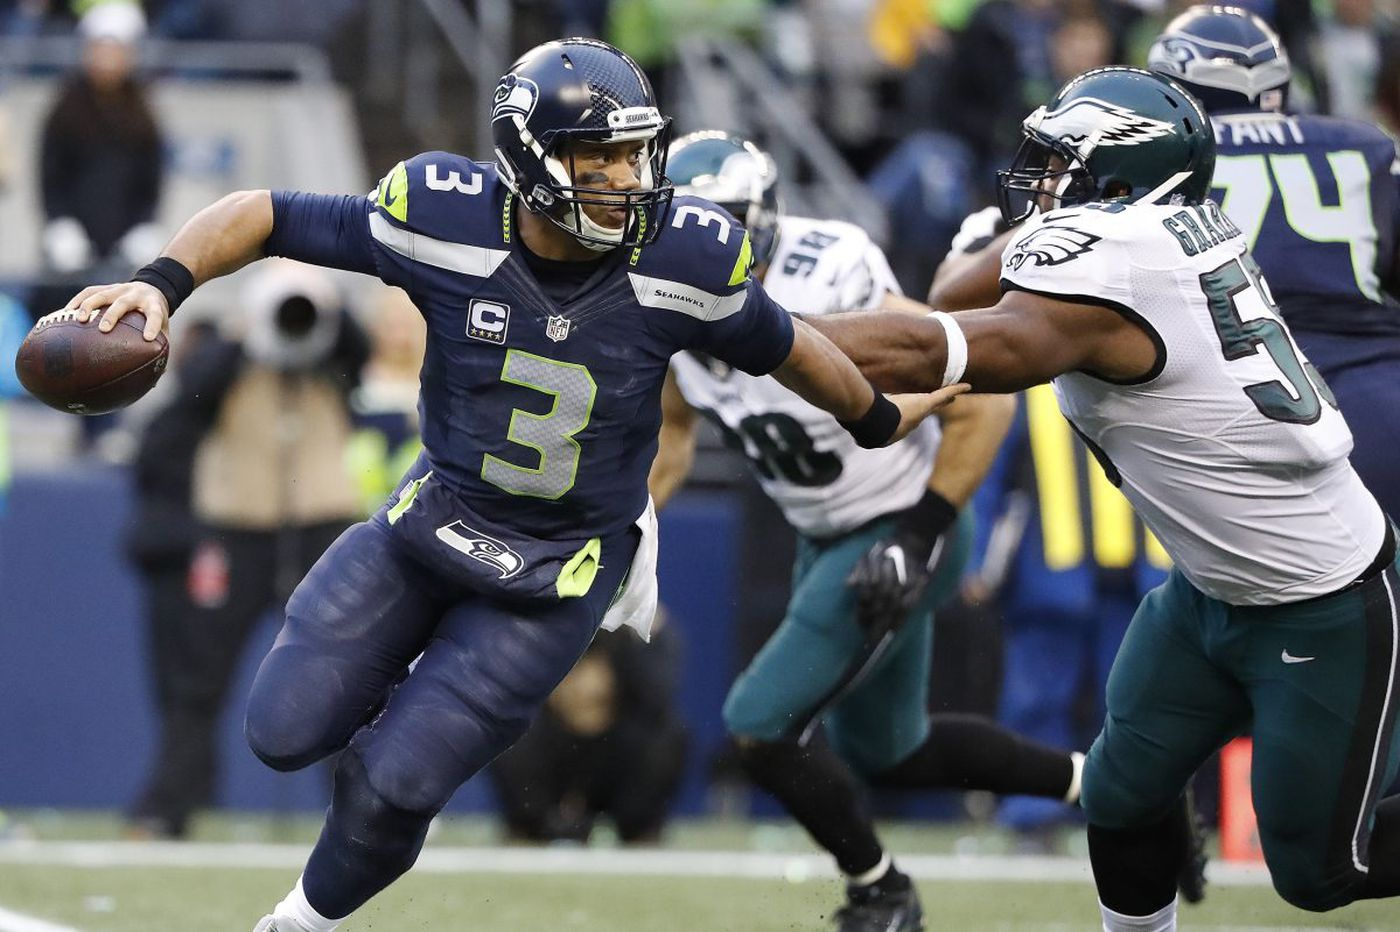 Week 13 NFL picks: That line's too big to take the Eagles | Vegas Vic